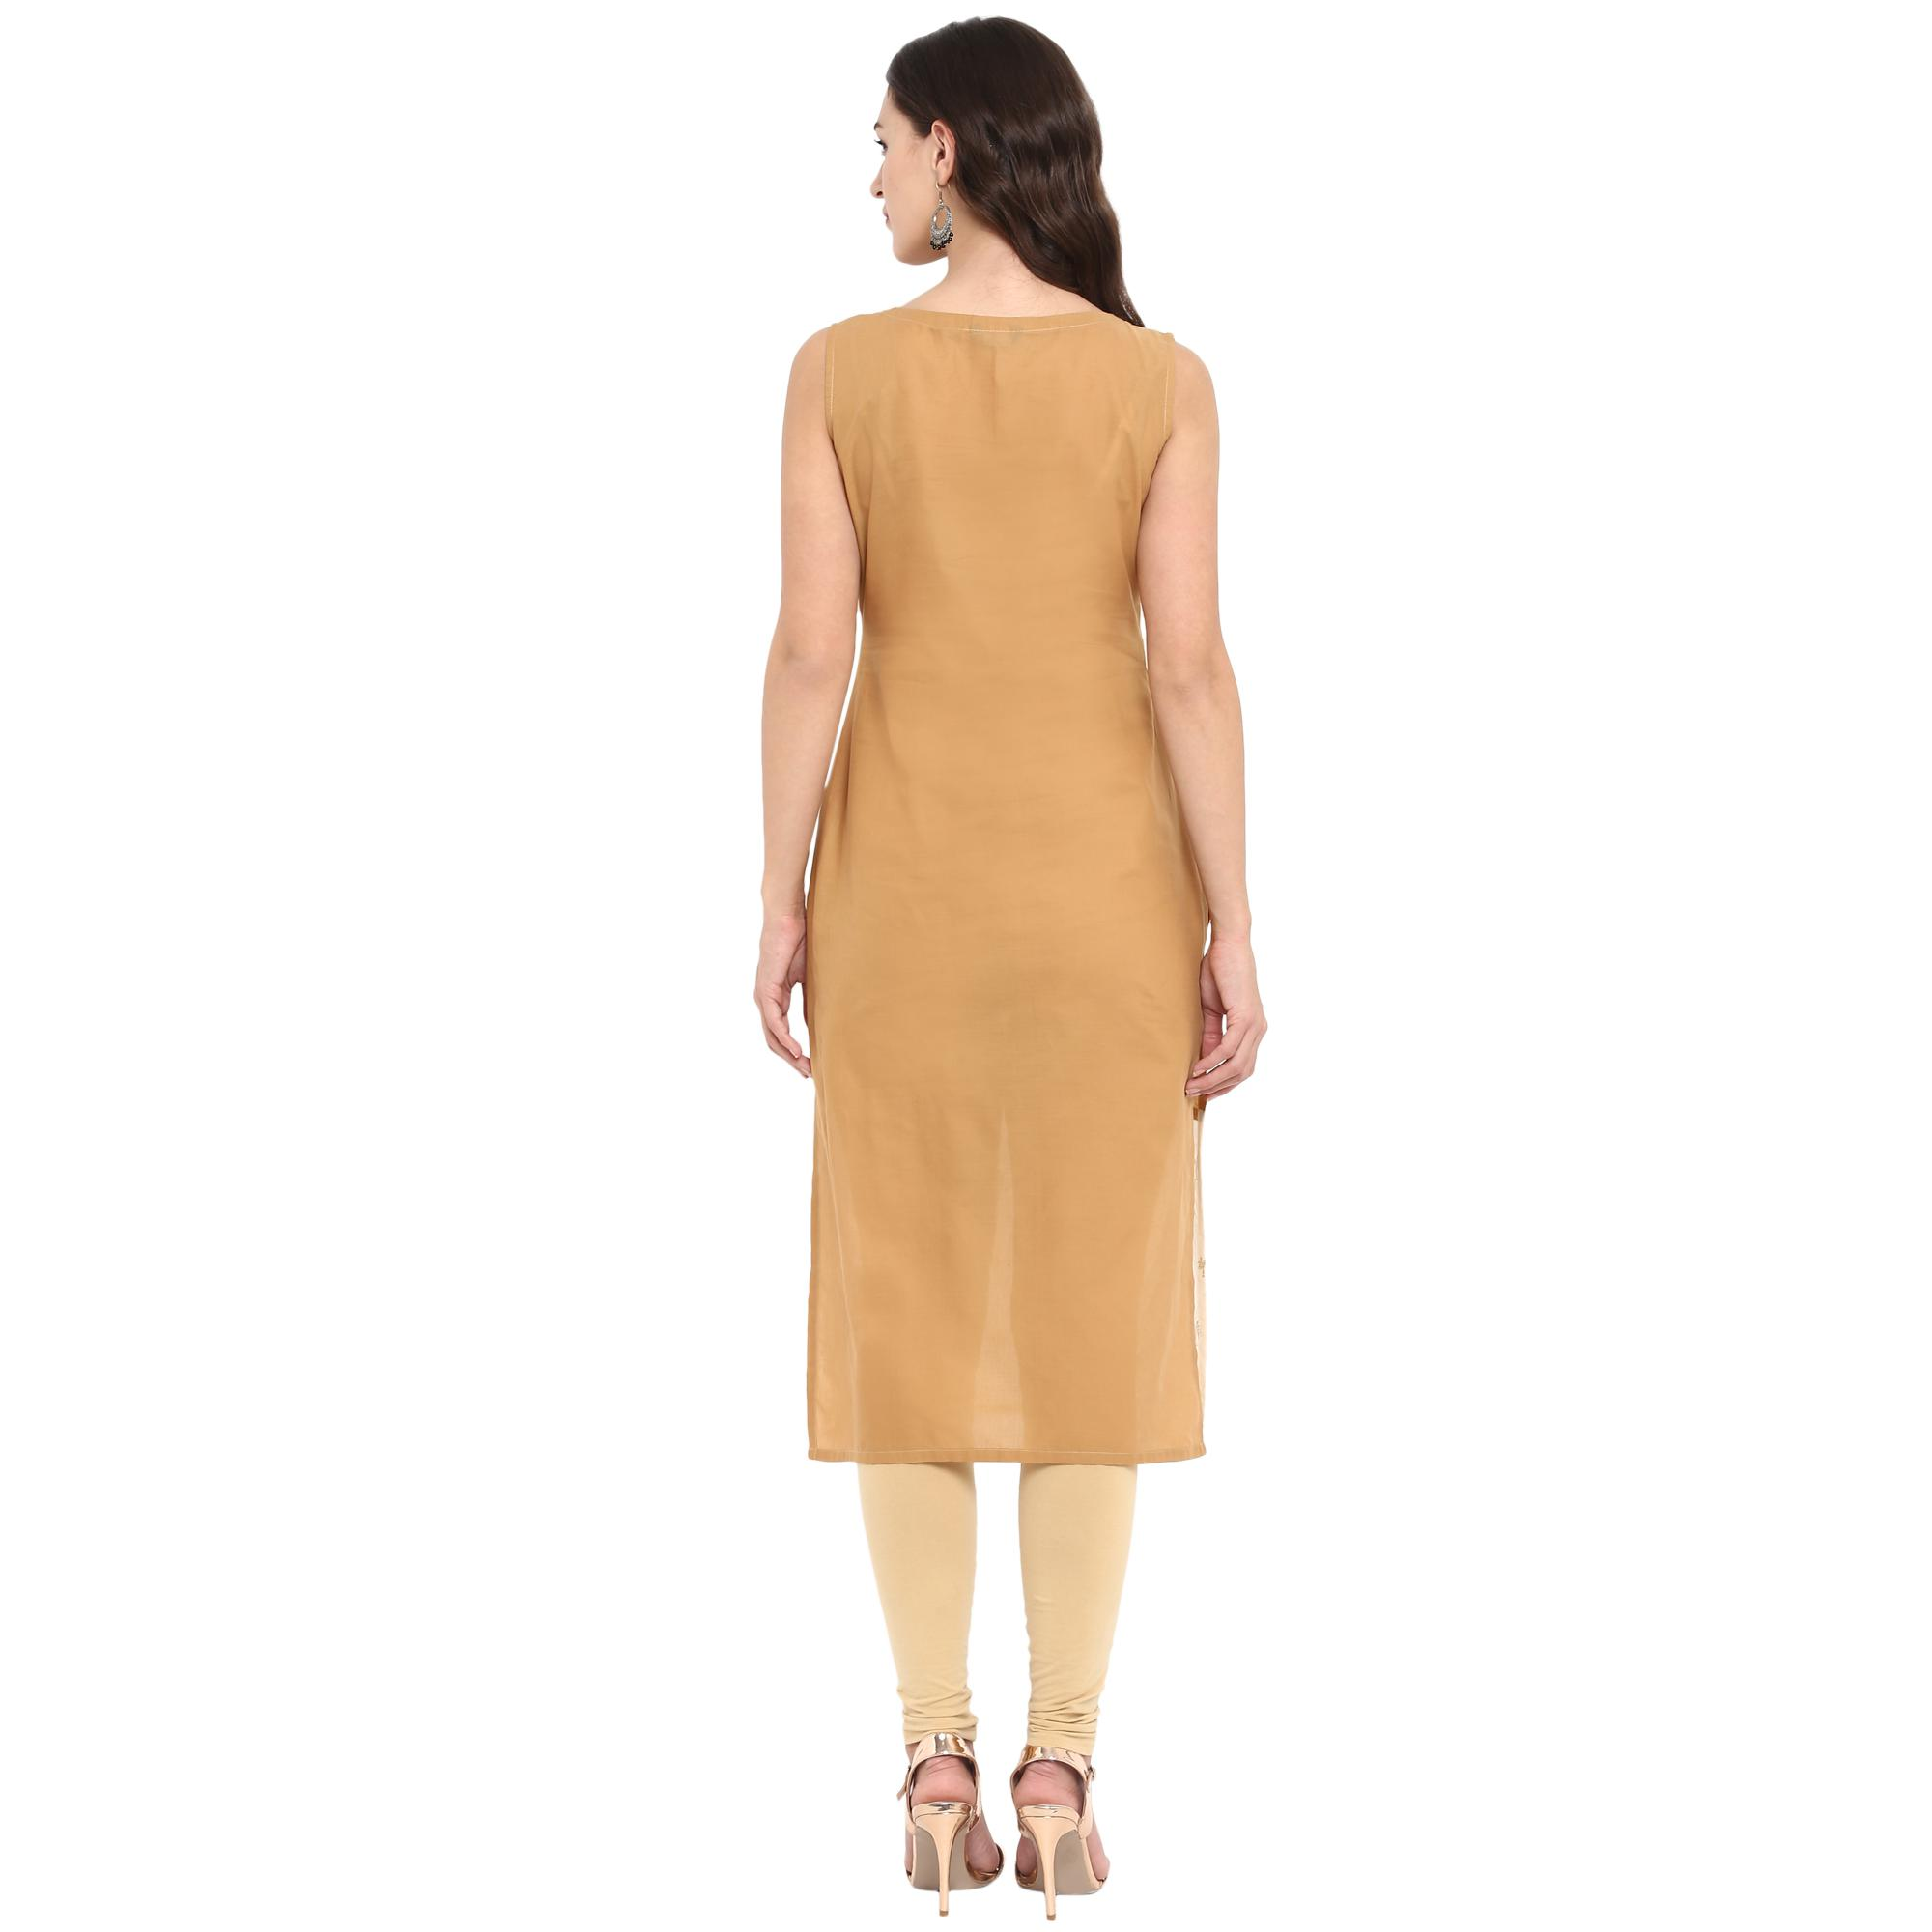 Ahalyaa - Beige Colored Casual Foil Printed Cotton Kurti